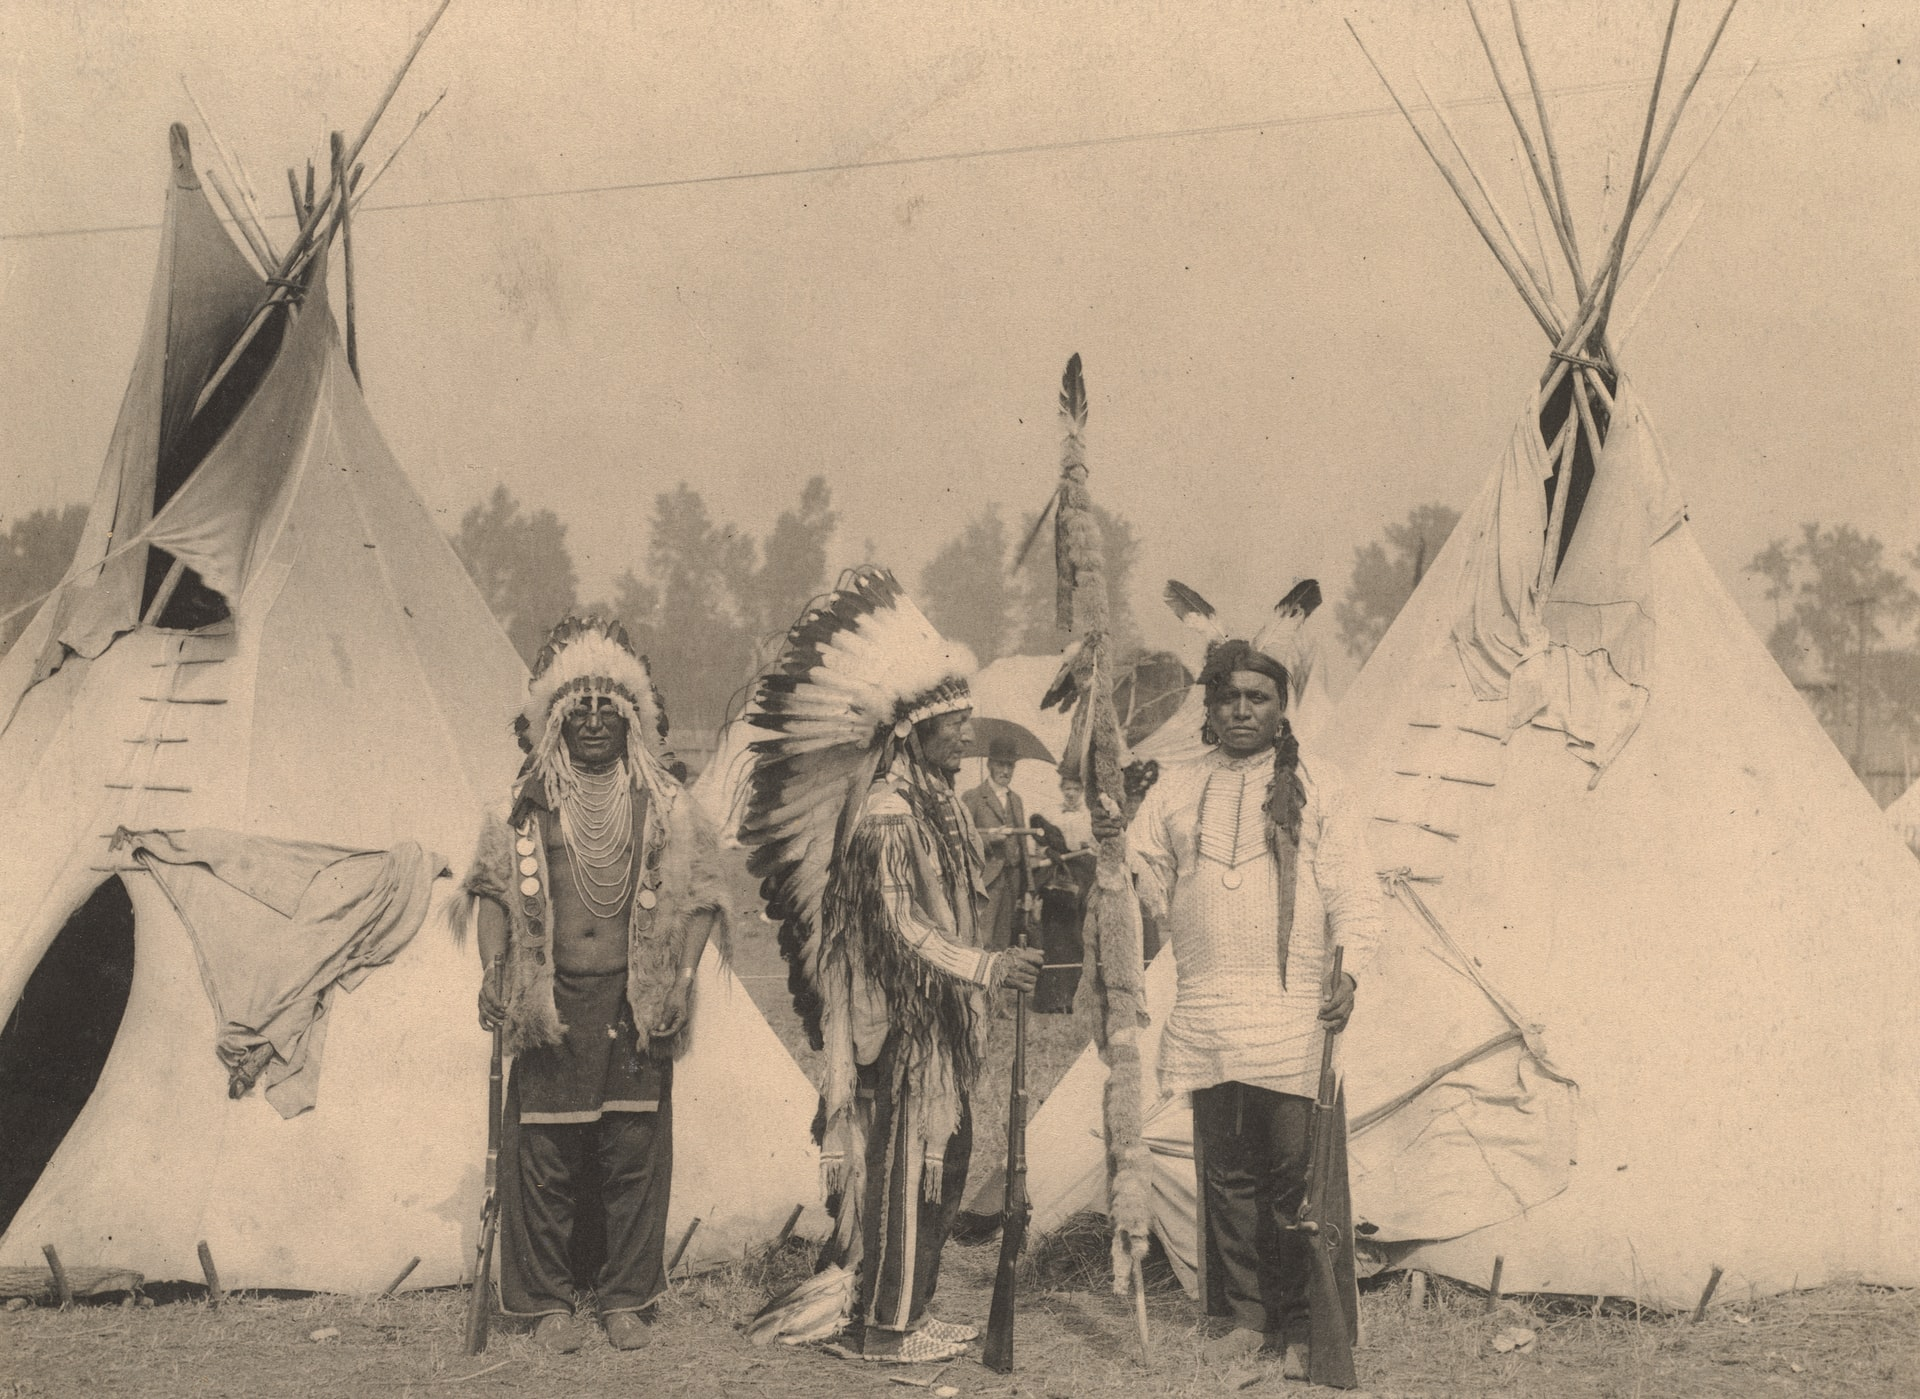 Three members of the Sioux tribe pose in Indian Village, 1898.